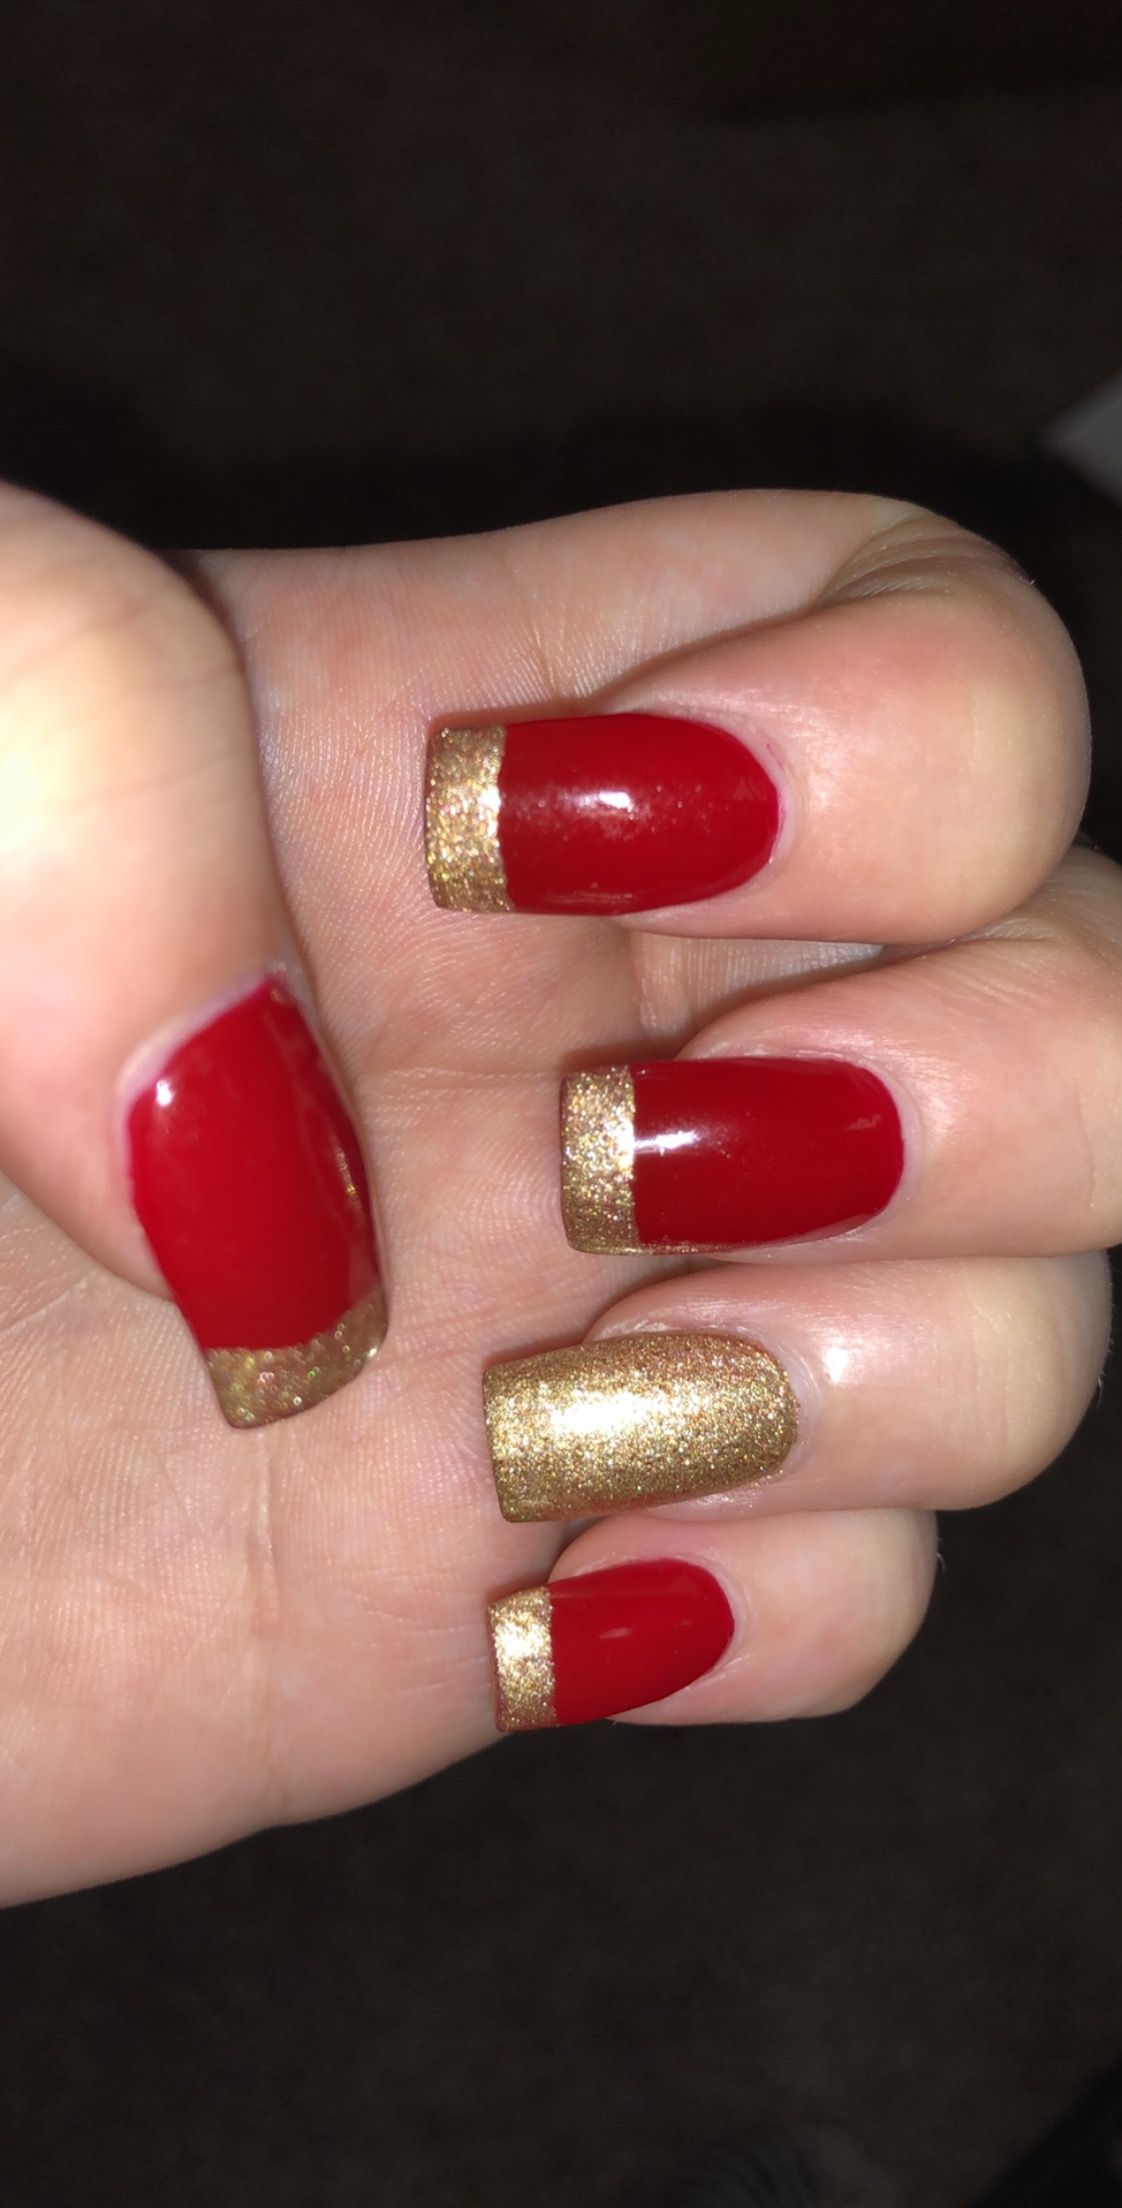 Christmas nails❤️ Red and gold nails for the holidays